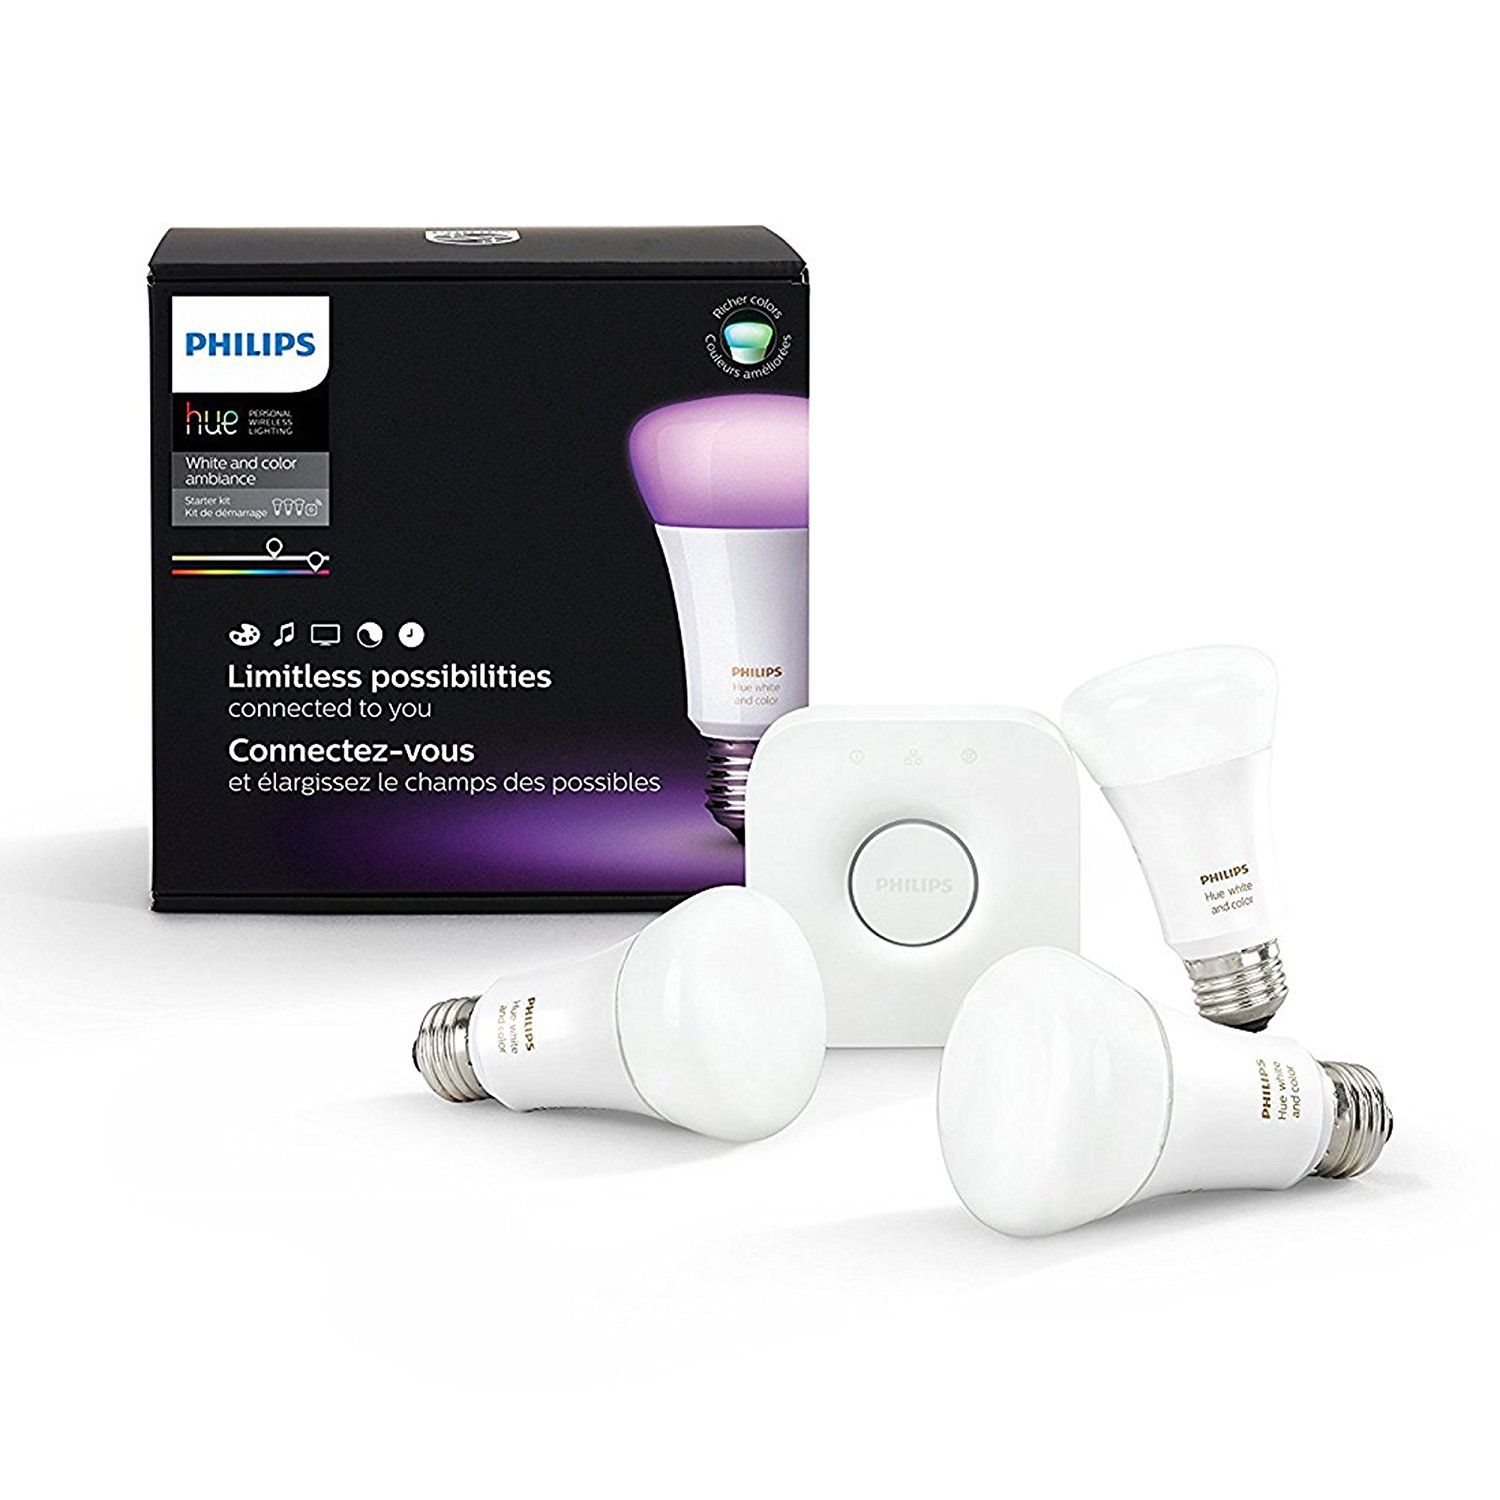 Image for Philips Hue White and color Starter kit - wireless lighting set - LED light bulb x 3 from Circuit City